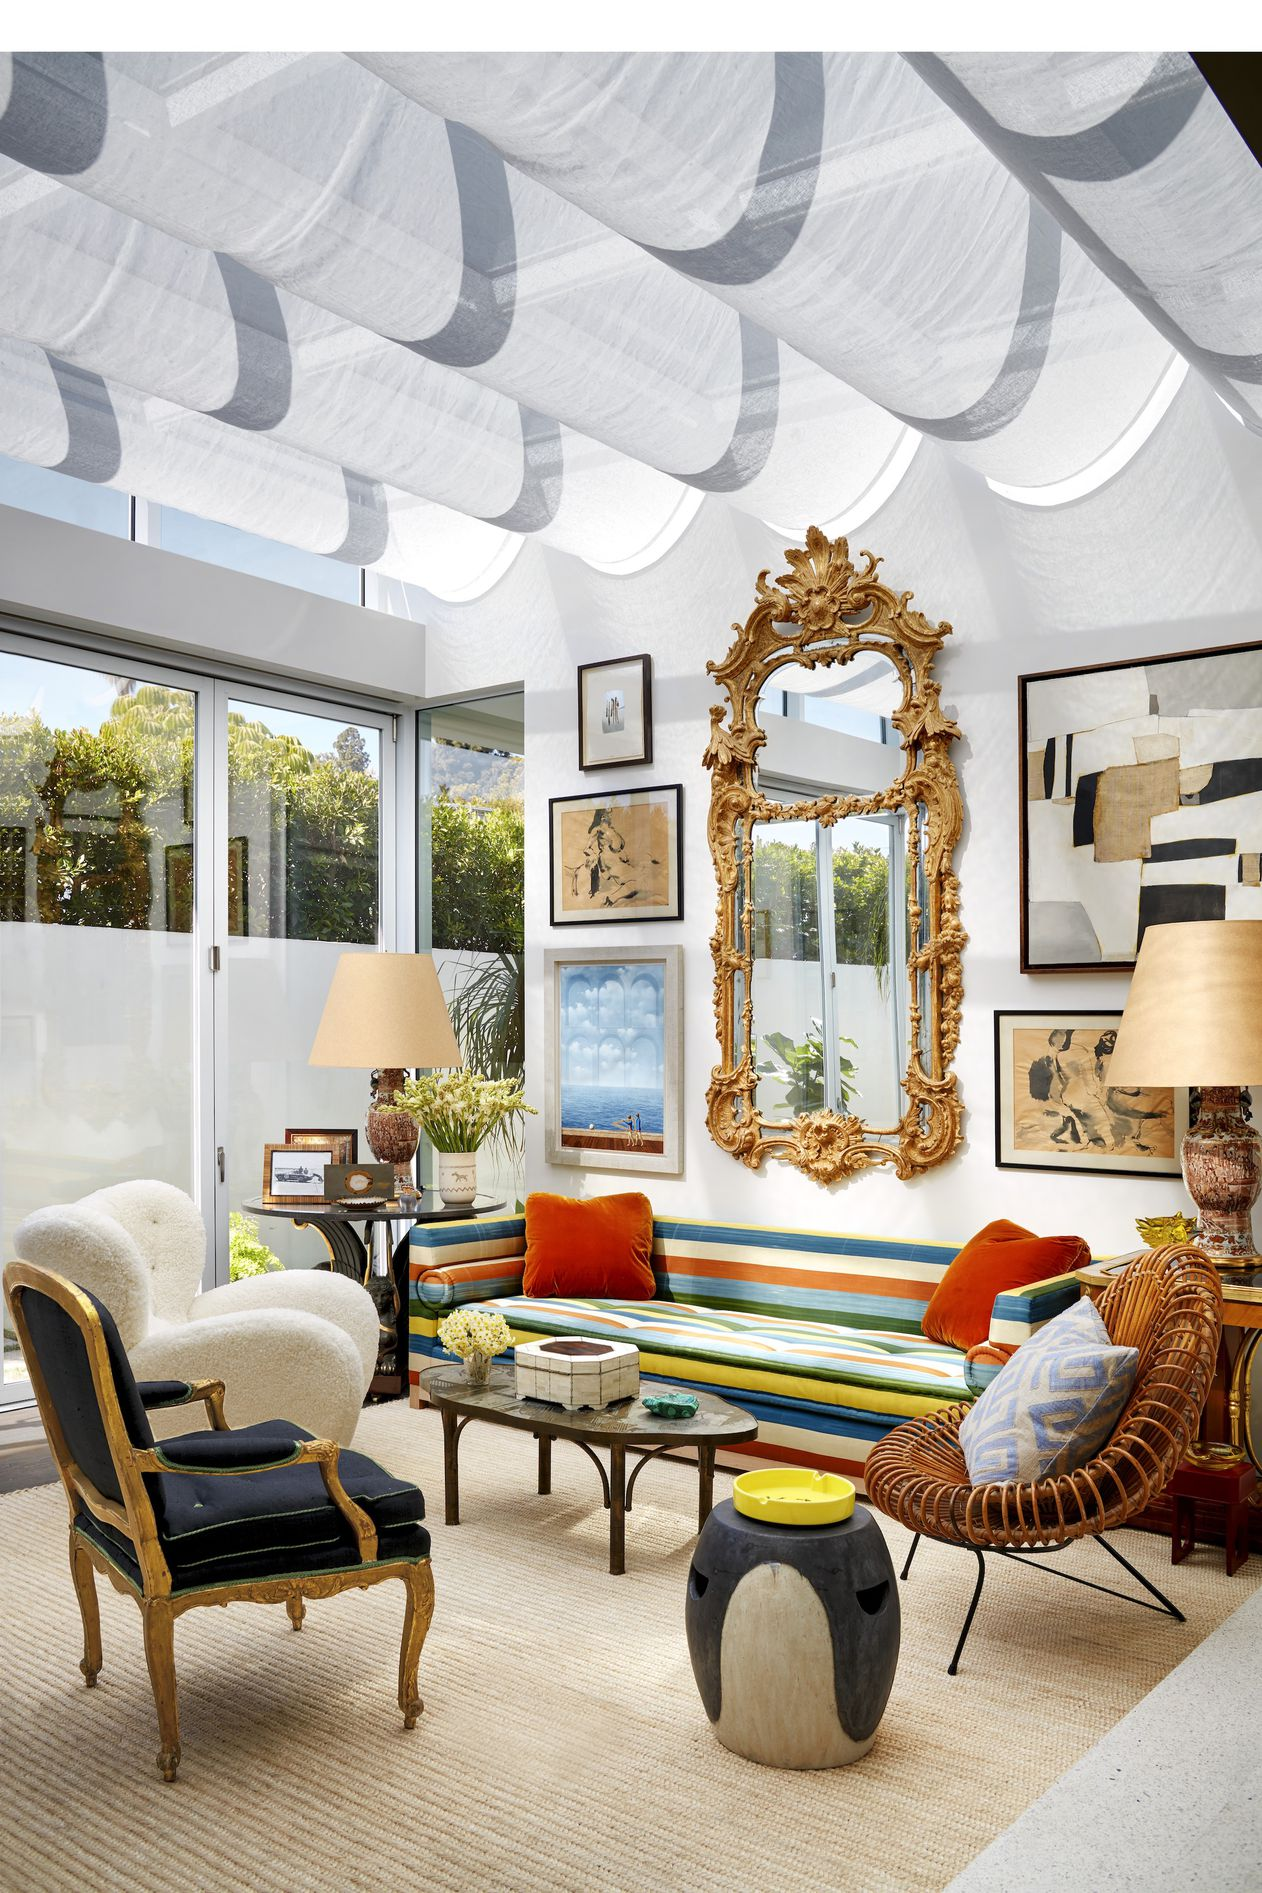 The sunroom's custom sofa is in an ikat stripe by Slightly East, the vintage Flemming Lassen armchair was purchased at Sotheby's, and the Louis XV chair is covered in an Old World Weavers silk-linen. The vintage cocktail table is by Philip and Kelvin LaVerne, and the ceiling is draped in a Rogers & Goffigon linen. The collage ( top right ) is by Edoardo Menini.   DESIGNER MILES REDD PHOTOGRAPH BY TREVOR TONDRO